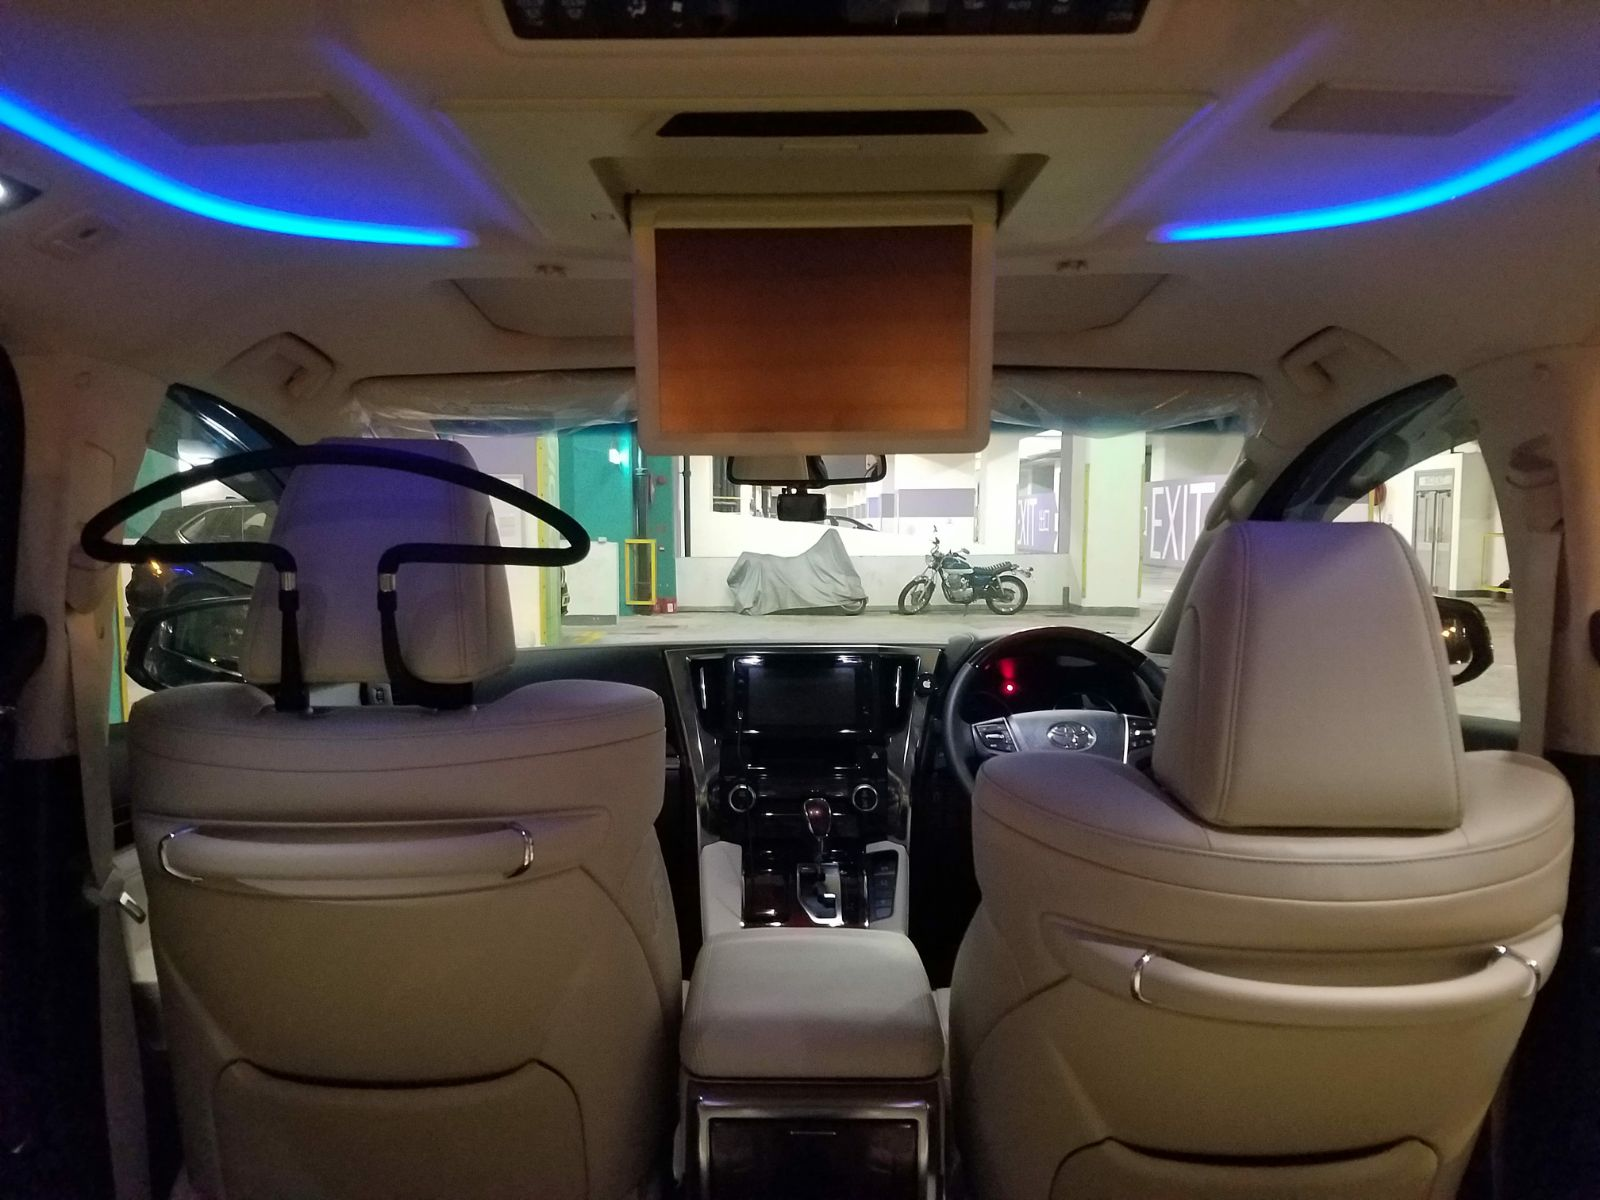 Toyota Alphard Van / Hong Kong,    / Hourly (Other services) HKD 700.00  / Airport Transfer HKD 800.00